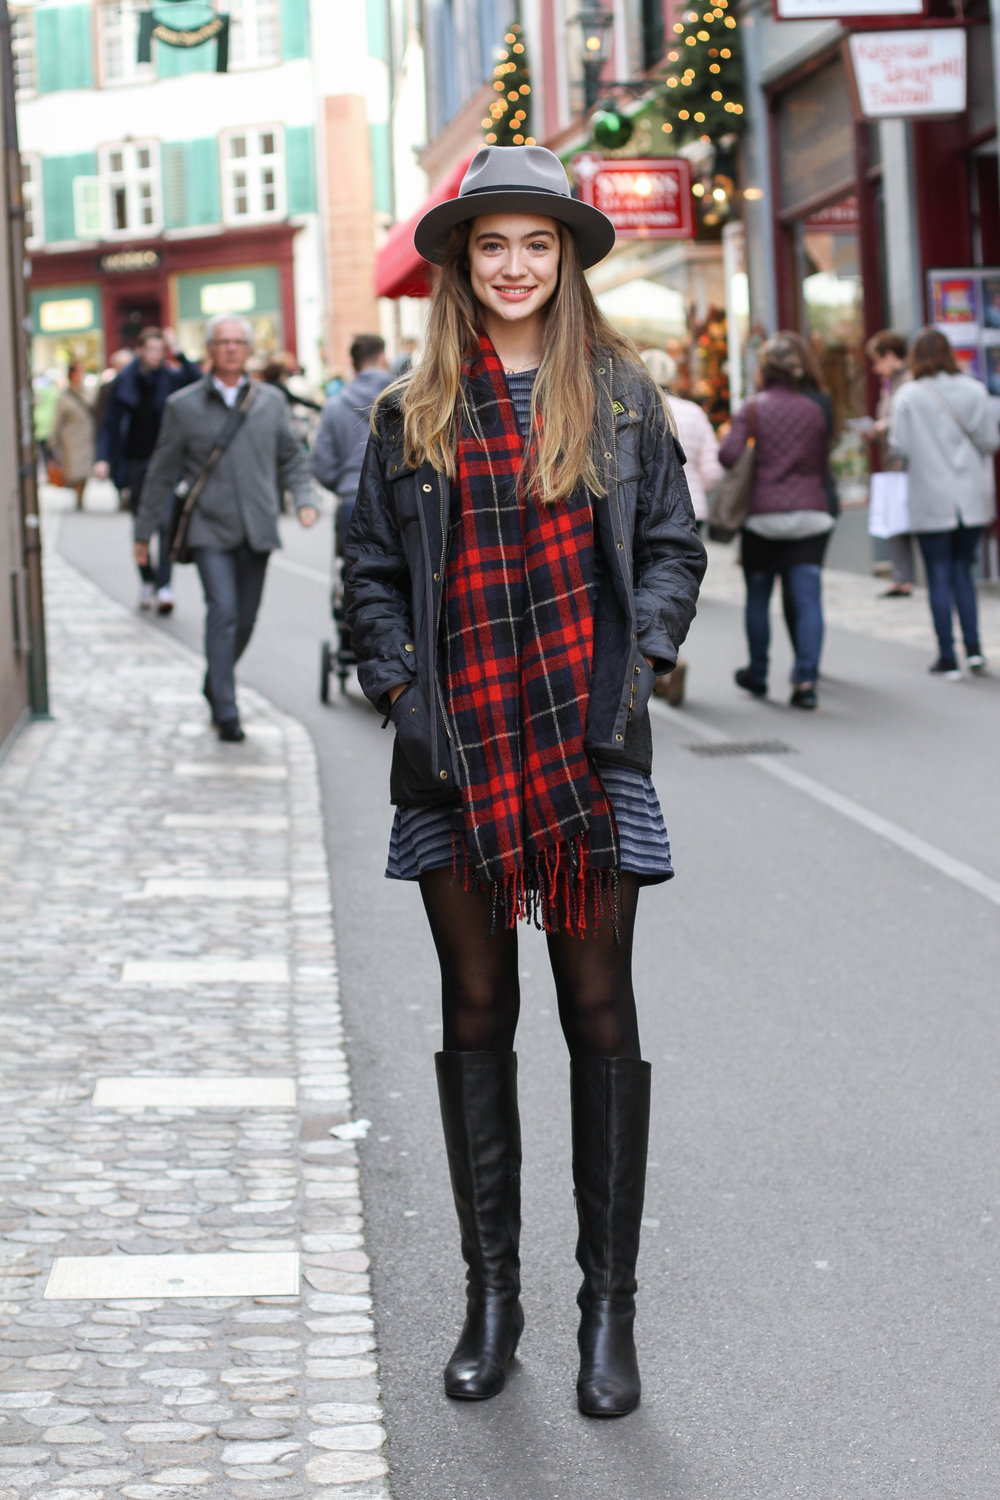 Scarf: Madewell/Dress: urban outfitters/Jacket: Barbour